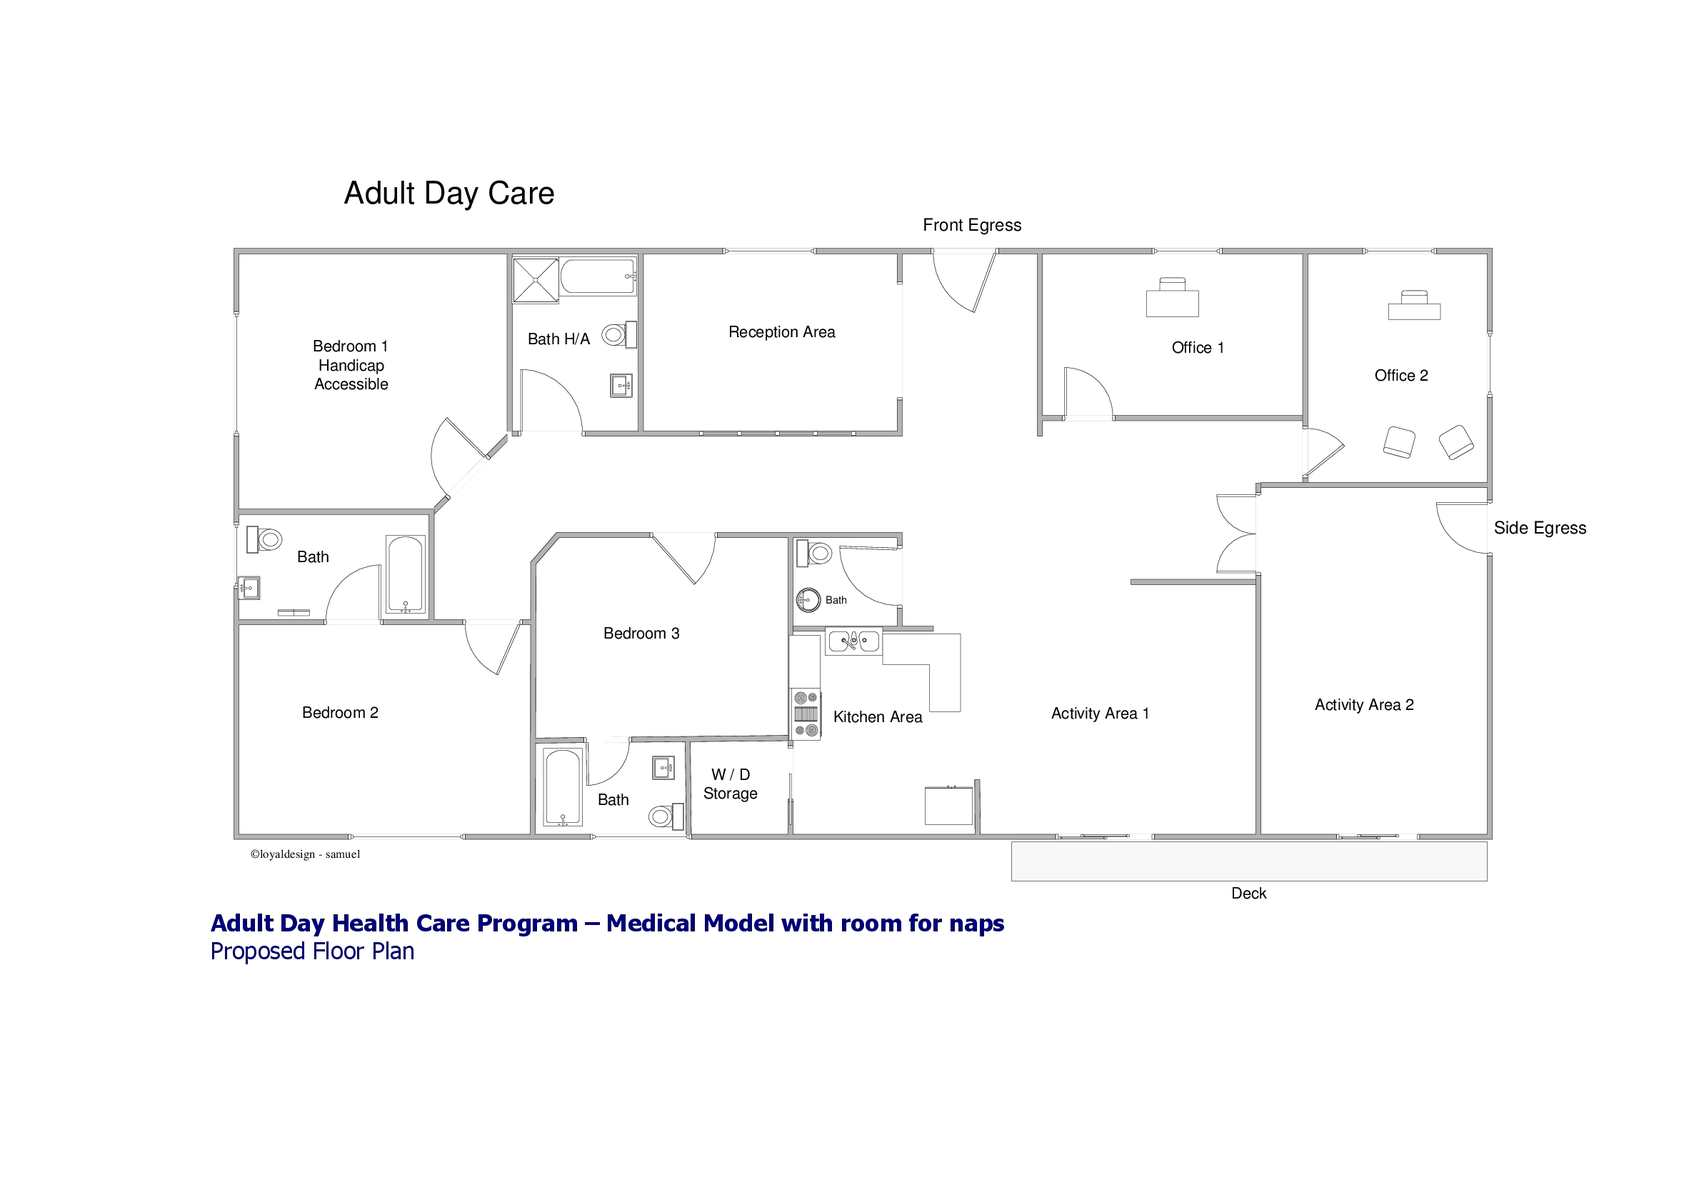 ADULT DAY CARE SAMPLE FLOOR PLAN